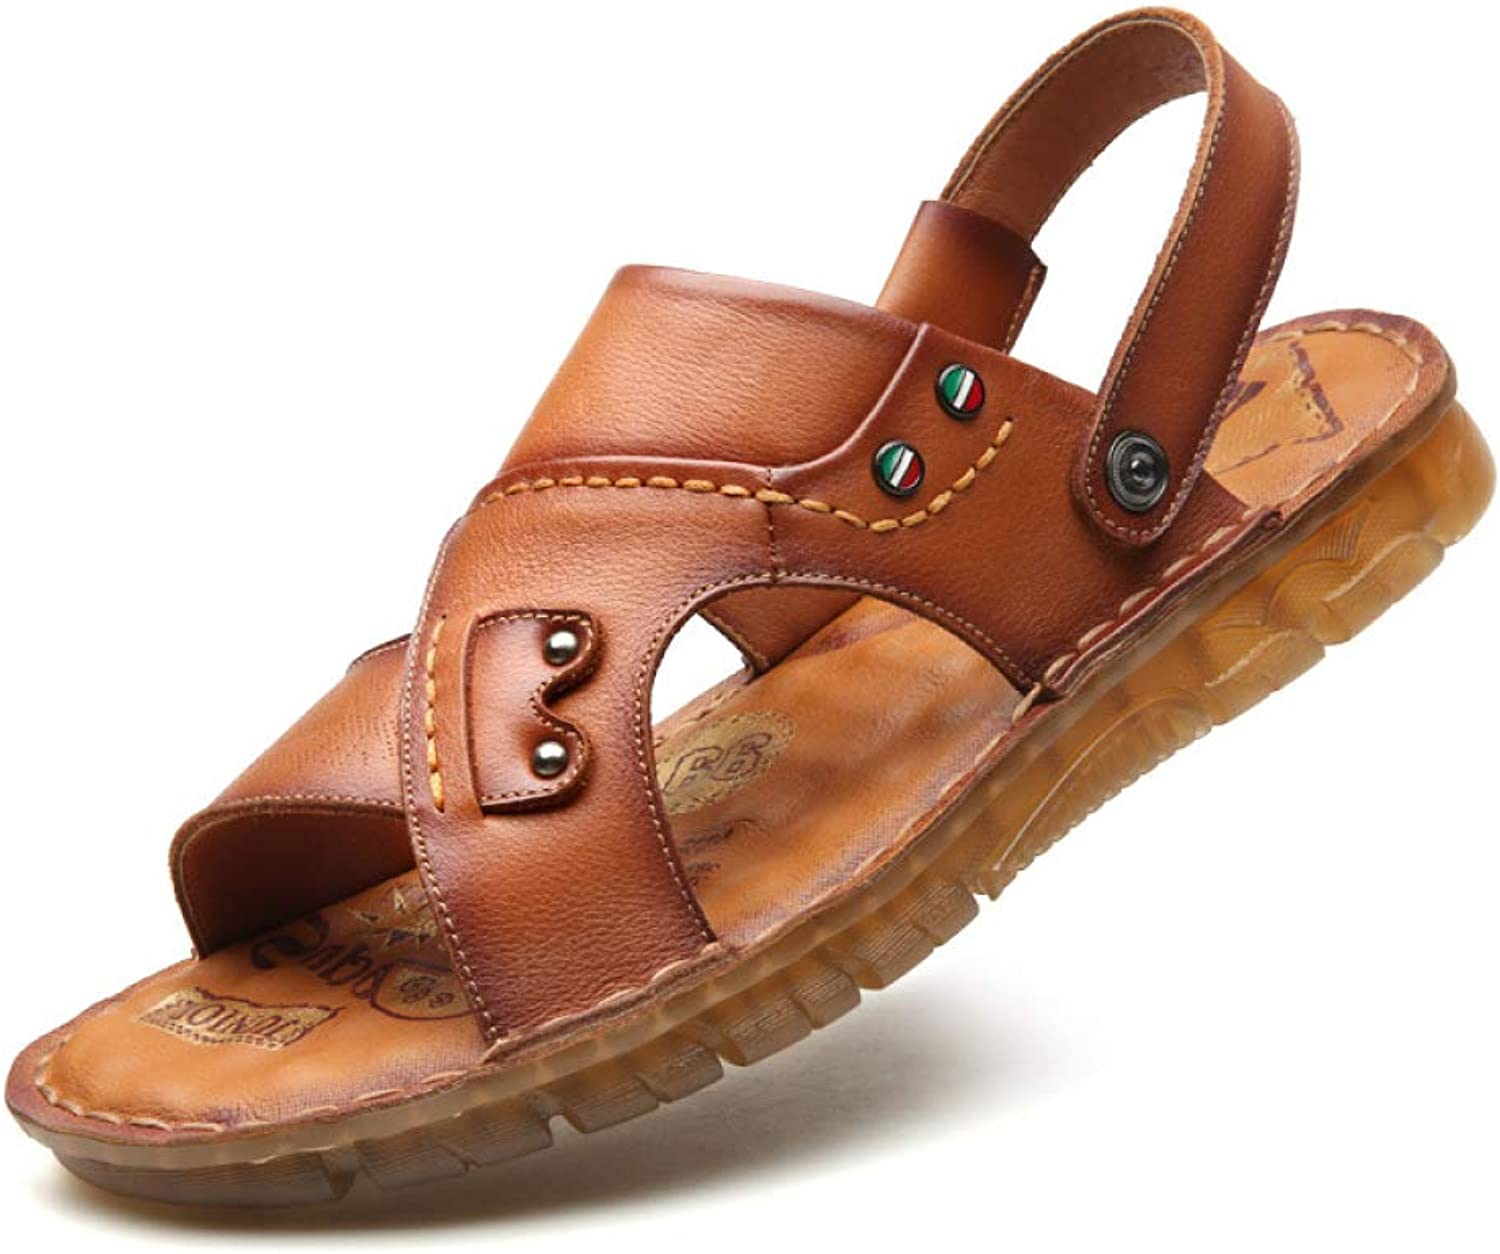 WJP Men's Sandals - Durable Summer Sandals, Casual Genuine Leather Beach shoes, Two Ways of Wearing A   42